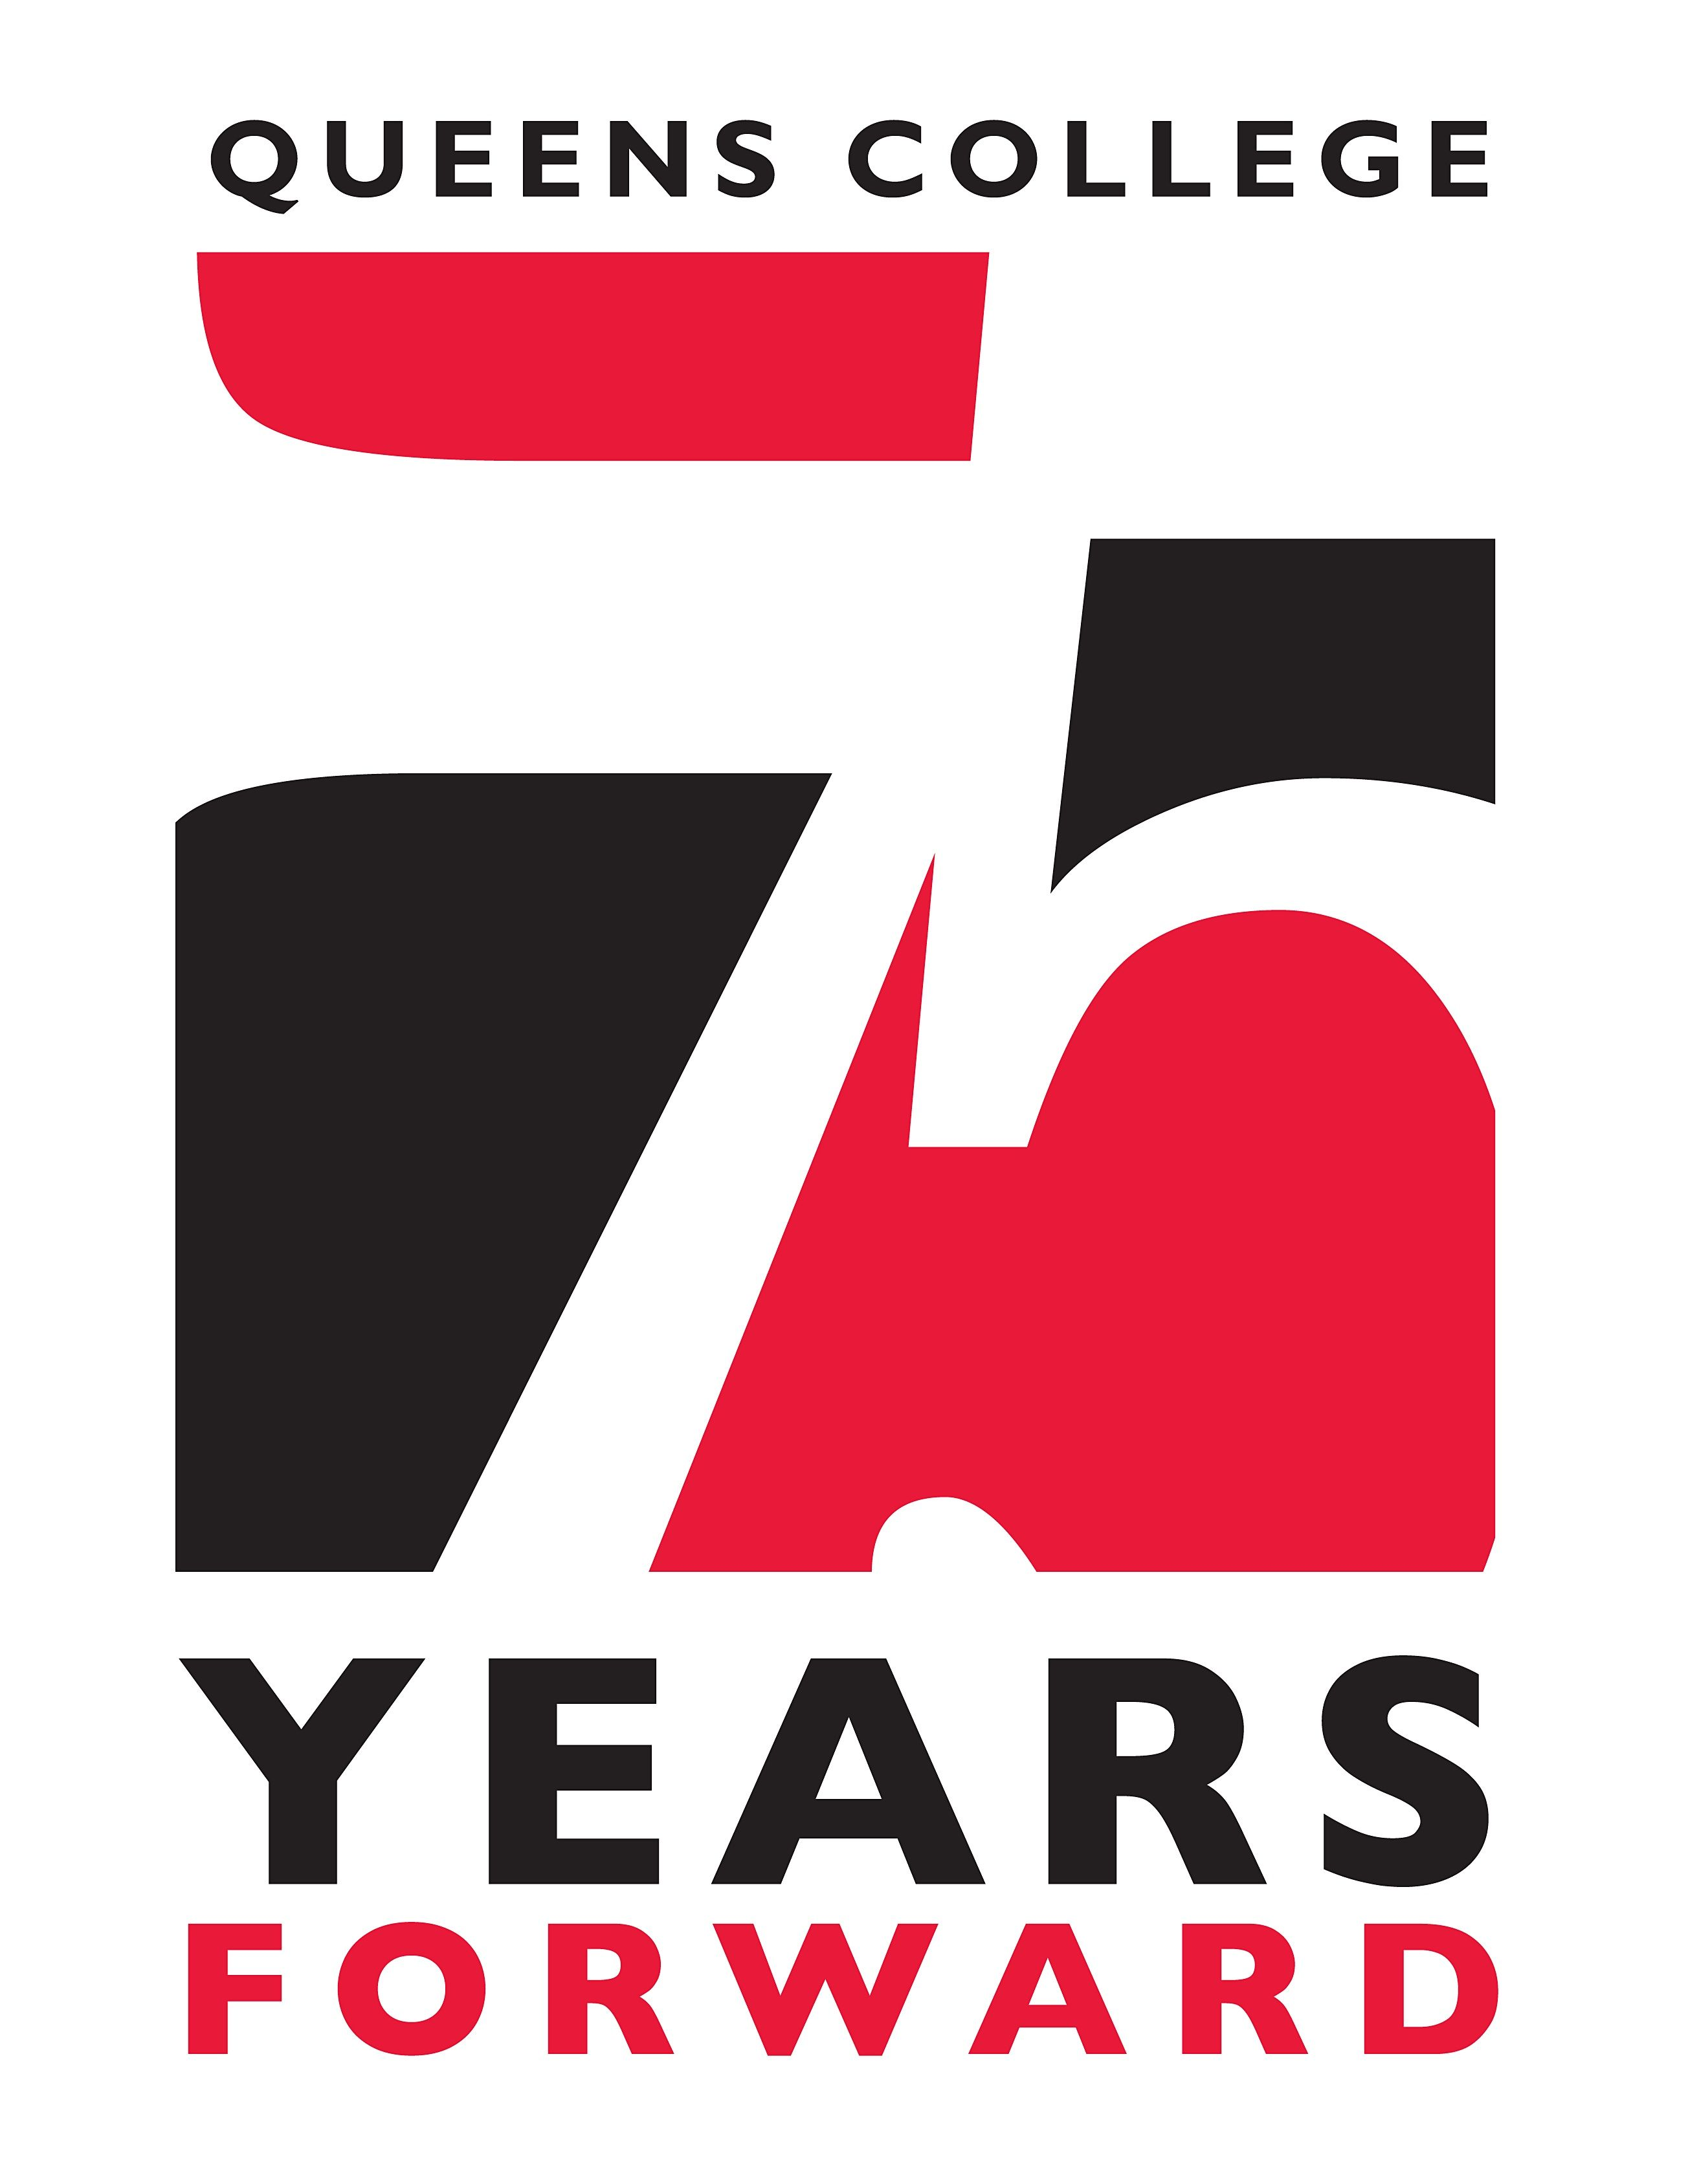 Image detail for 75th Anniversary Logo 50th anniversary